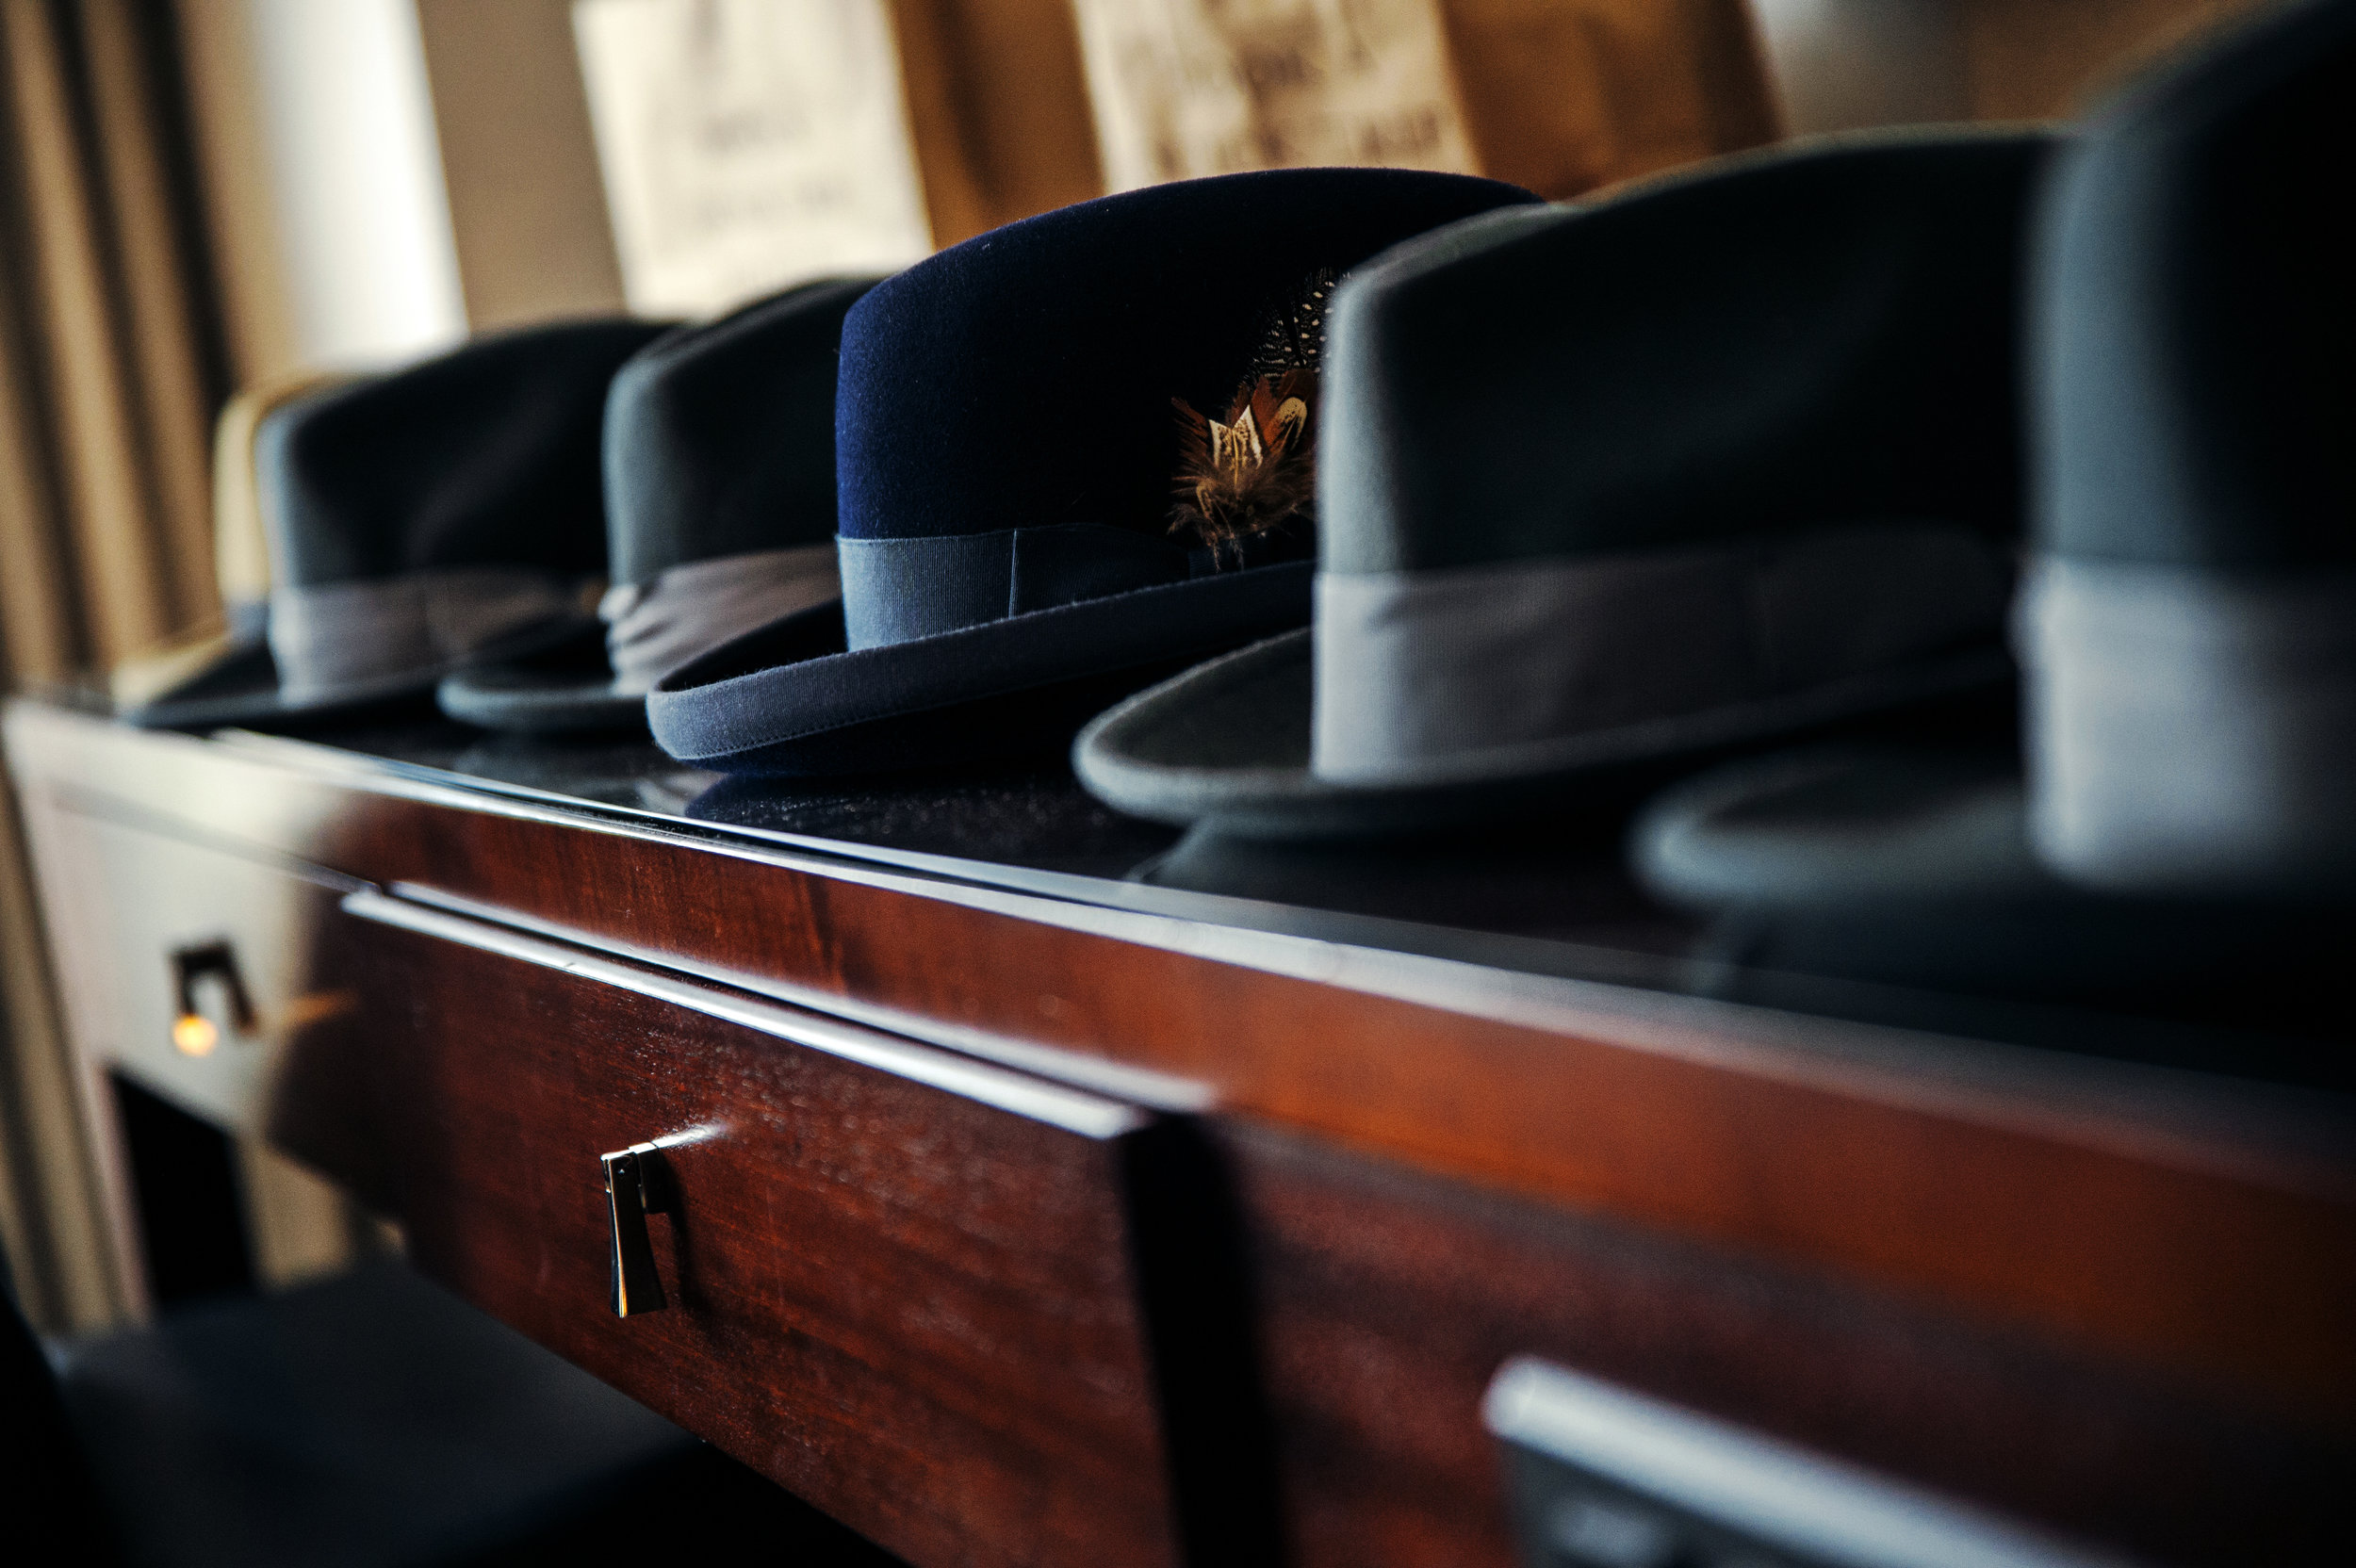 Groom 20's Inspired velvet fedora hats at the historic Loew's Theater in Jersey City